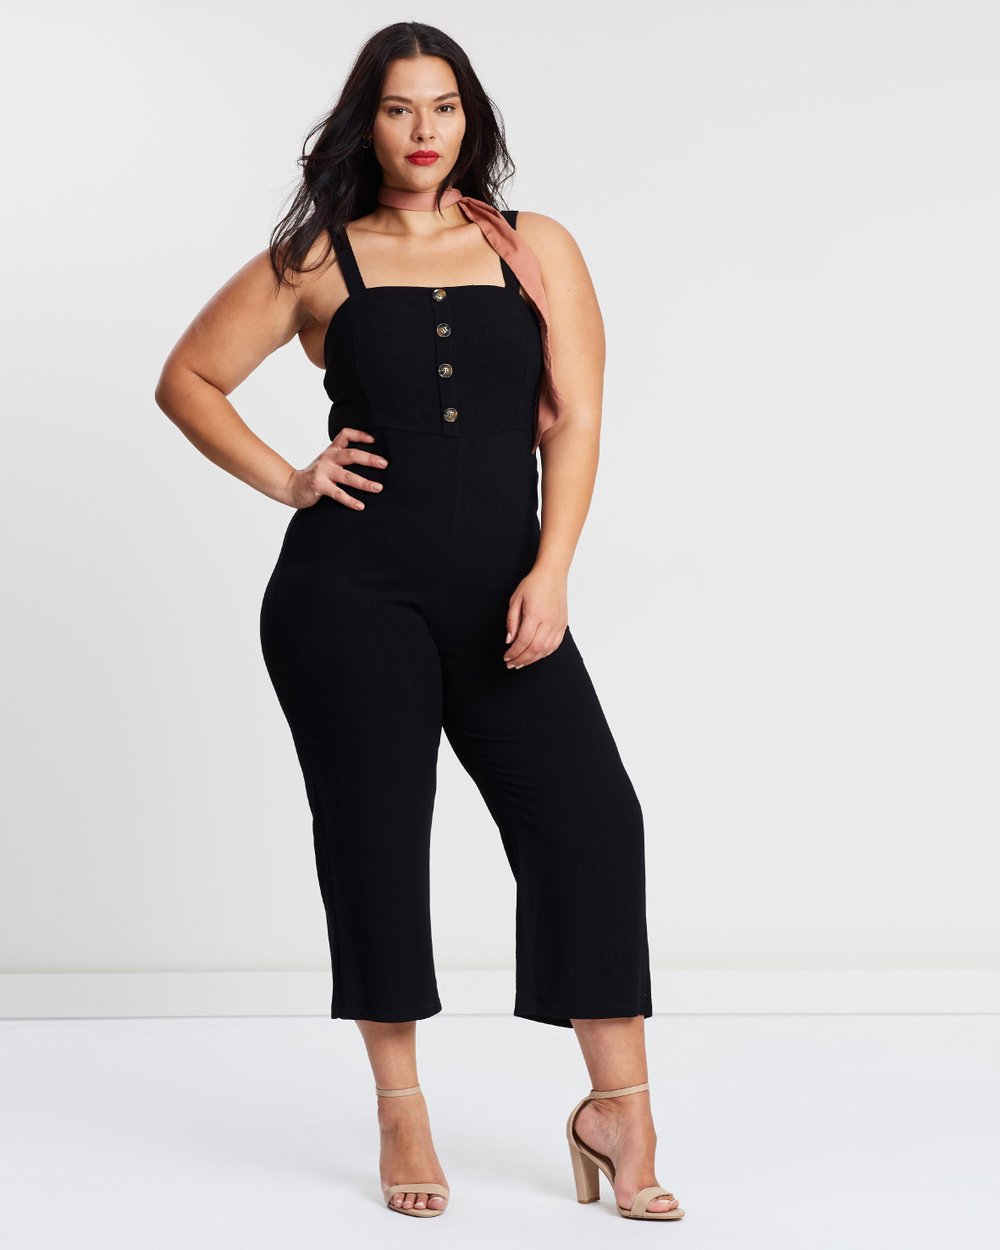 bb90164a0370 ICONIC EXCLUSIVE - Jenny Jumpsuit by Atmos Here Curvy Online